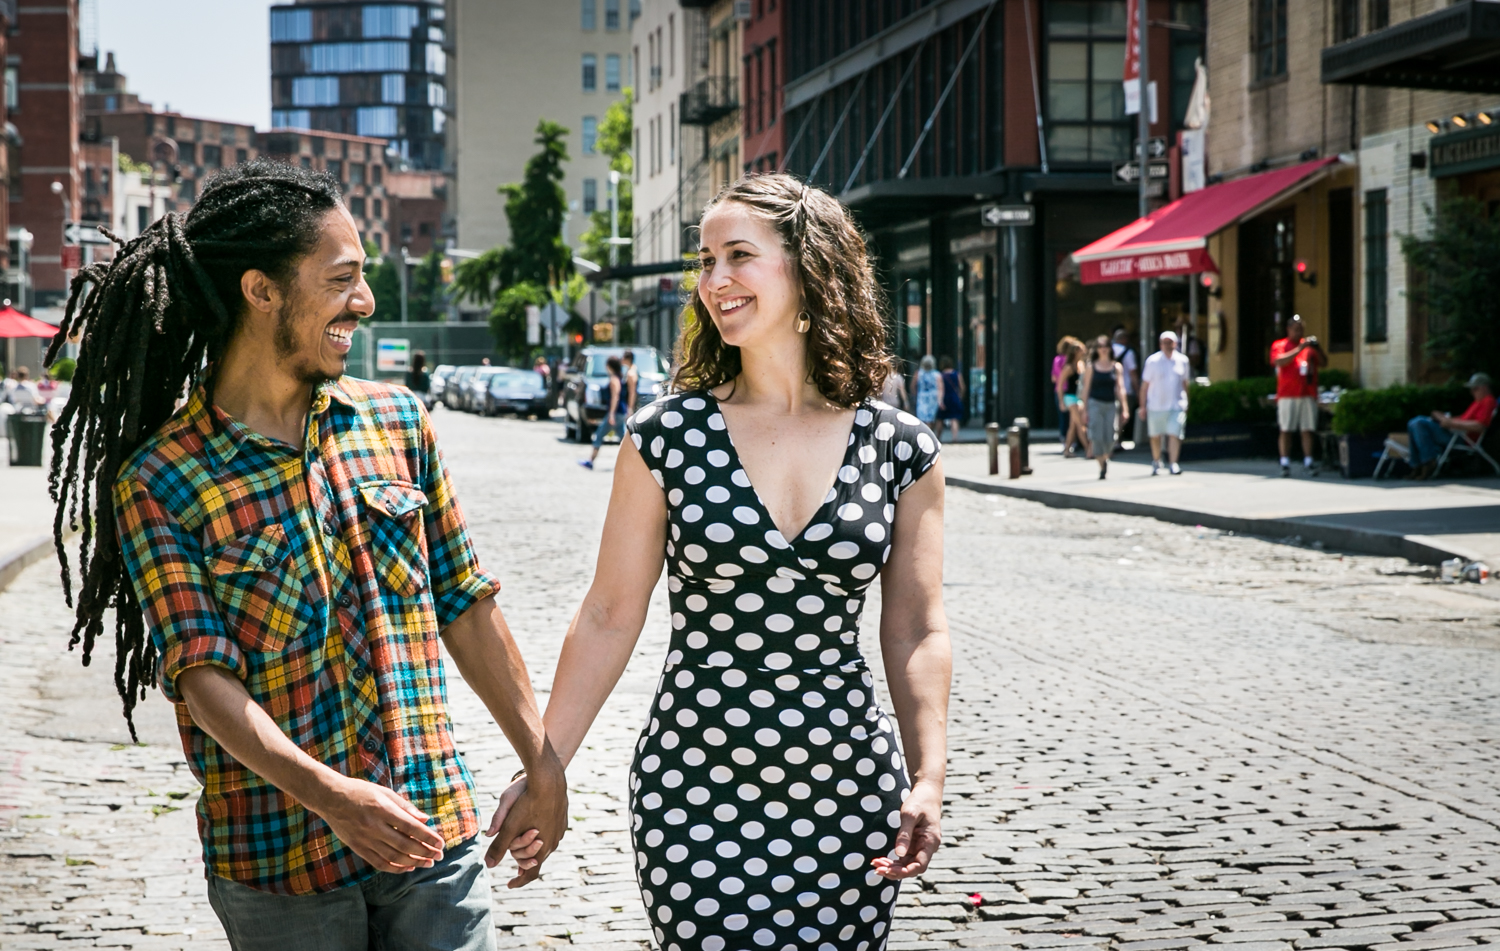 Couple walking hand-in-hand on cobblestone street